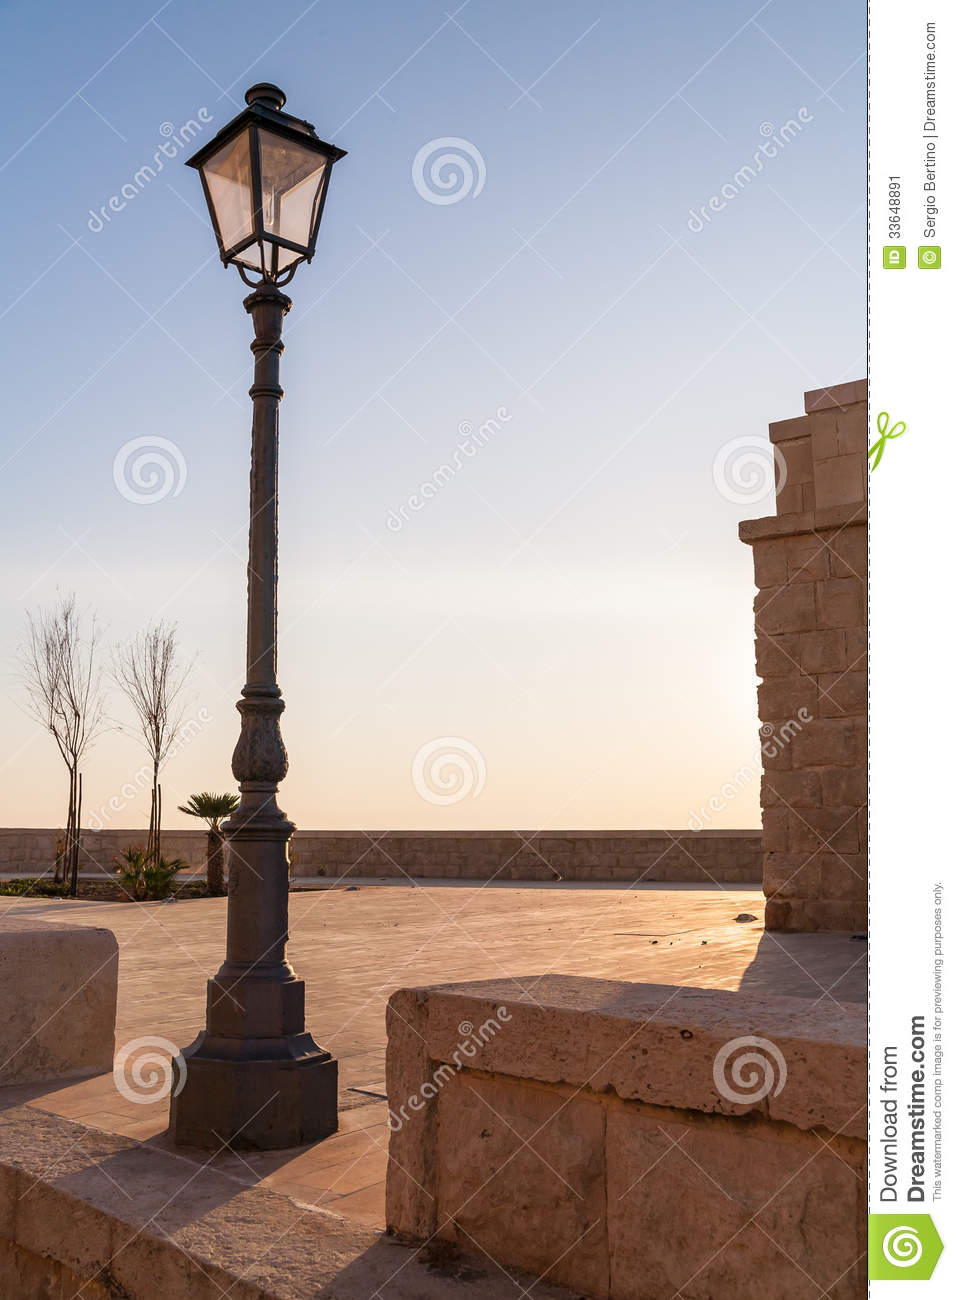 Old Fashioned Street Lamp Stock Image Image Of Background